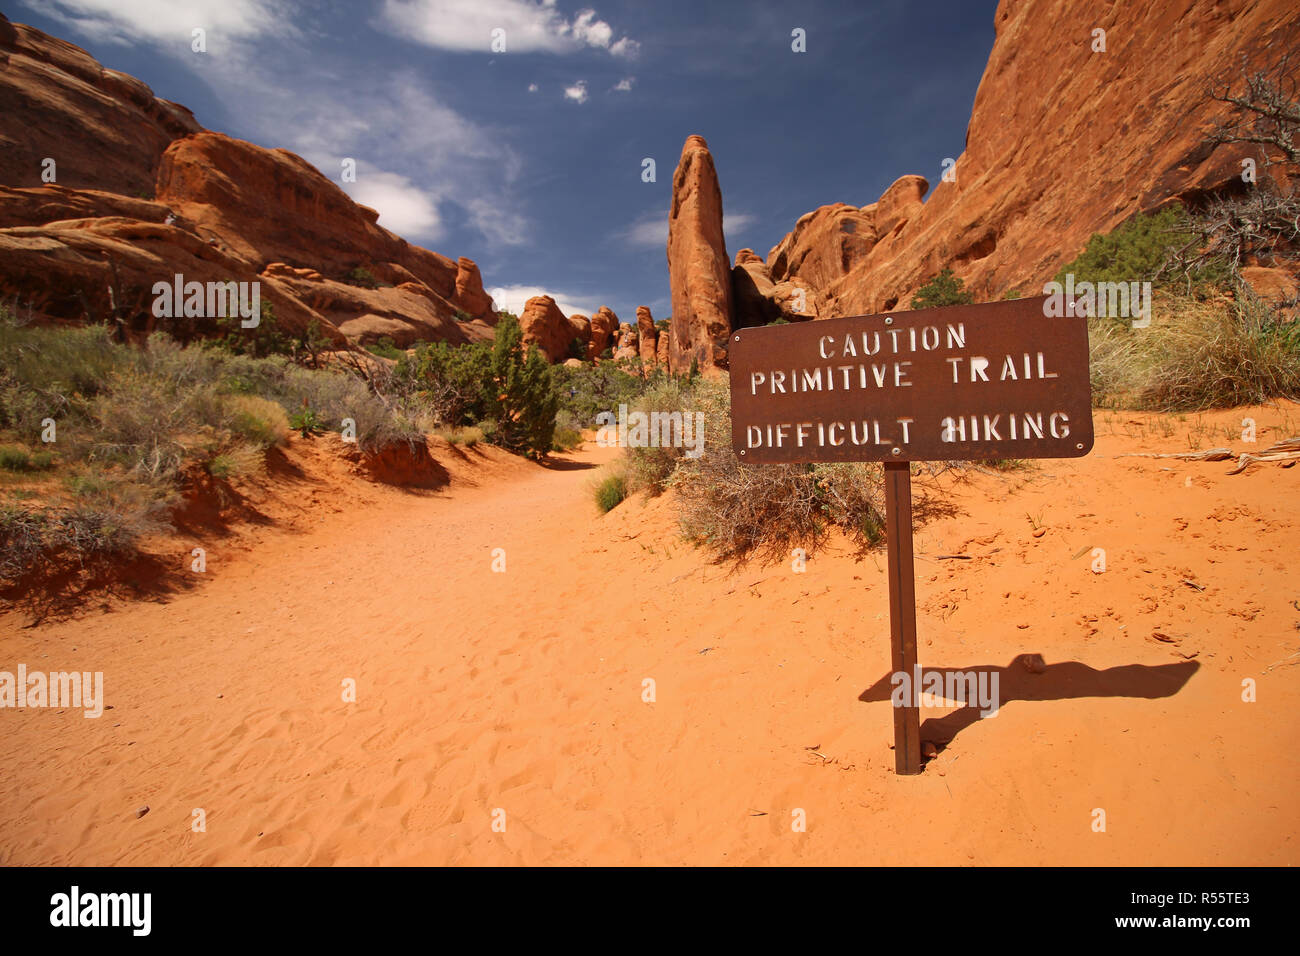 A sign in the desert reads: Caution primitive trail, difficult hiking. - Stock Image